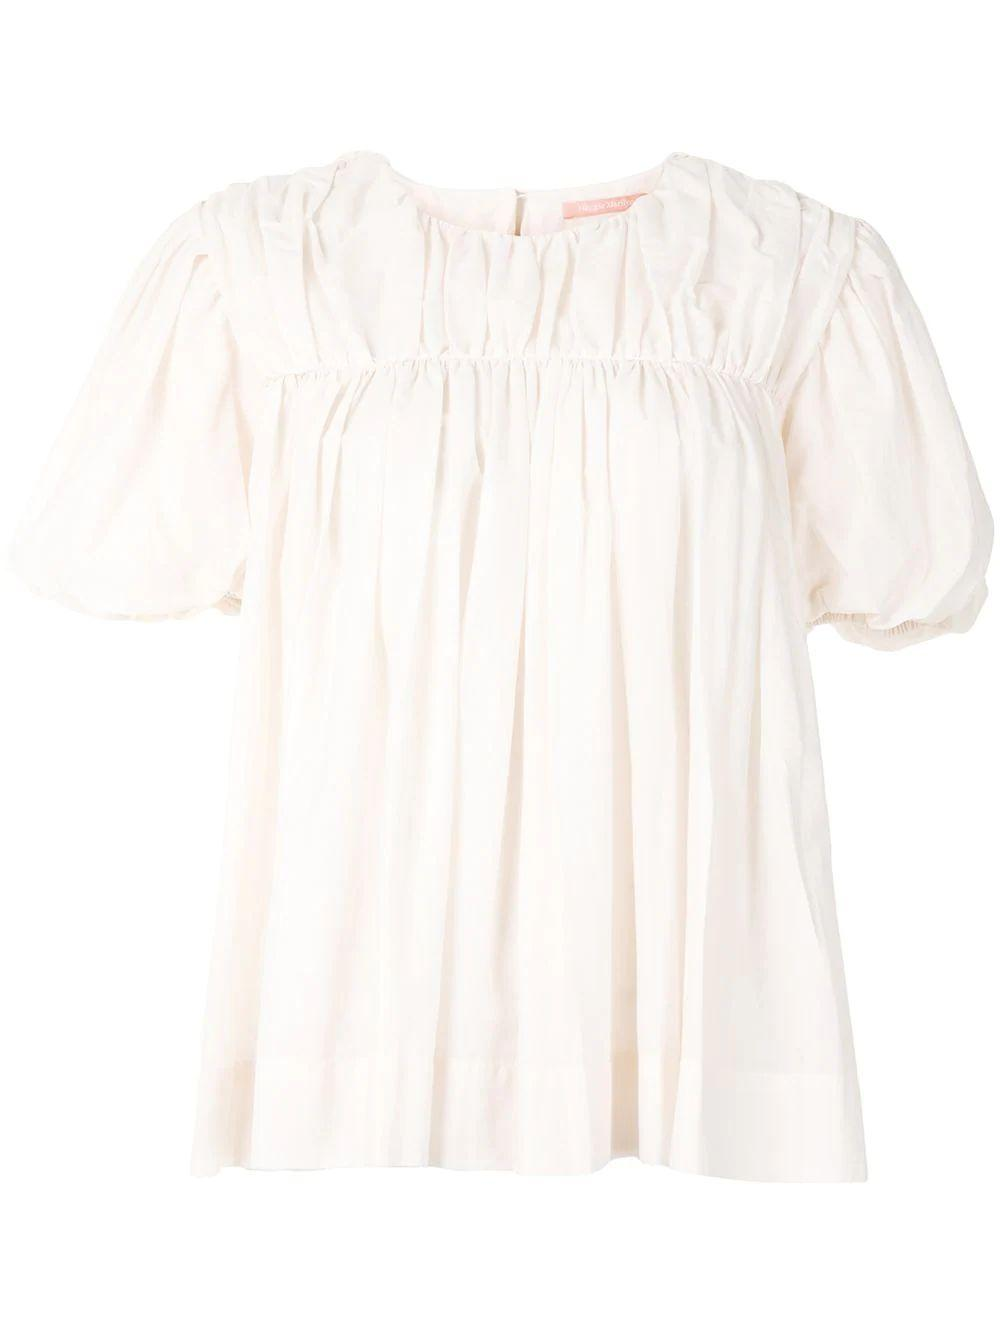 No Turning Back Puff Sleeve Top Item # TP-754-348-2